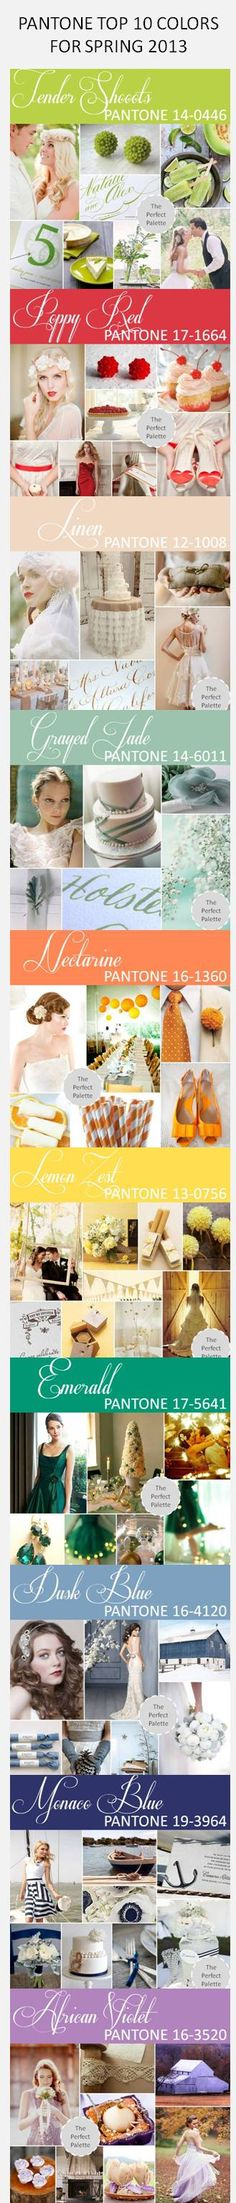 PANTONE TOP 10 COLORS FOR SPRING 2013 http://www.theperfectpalette.com/2012/10/pantone-fashion-color-report-spring-2013.html